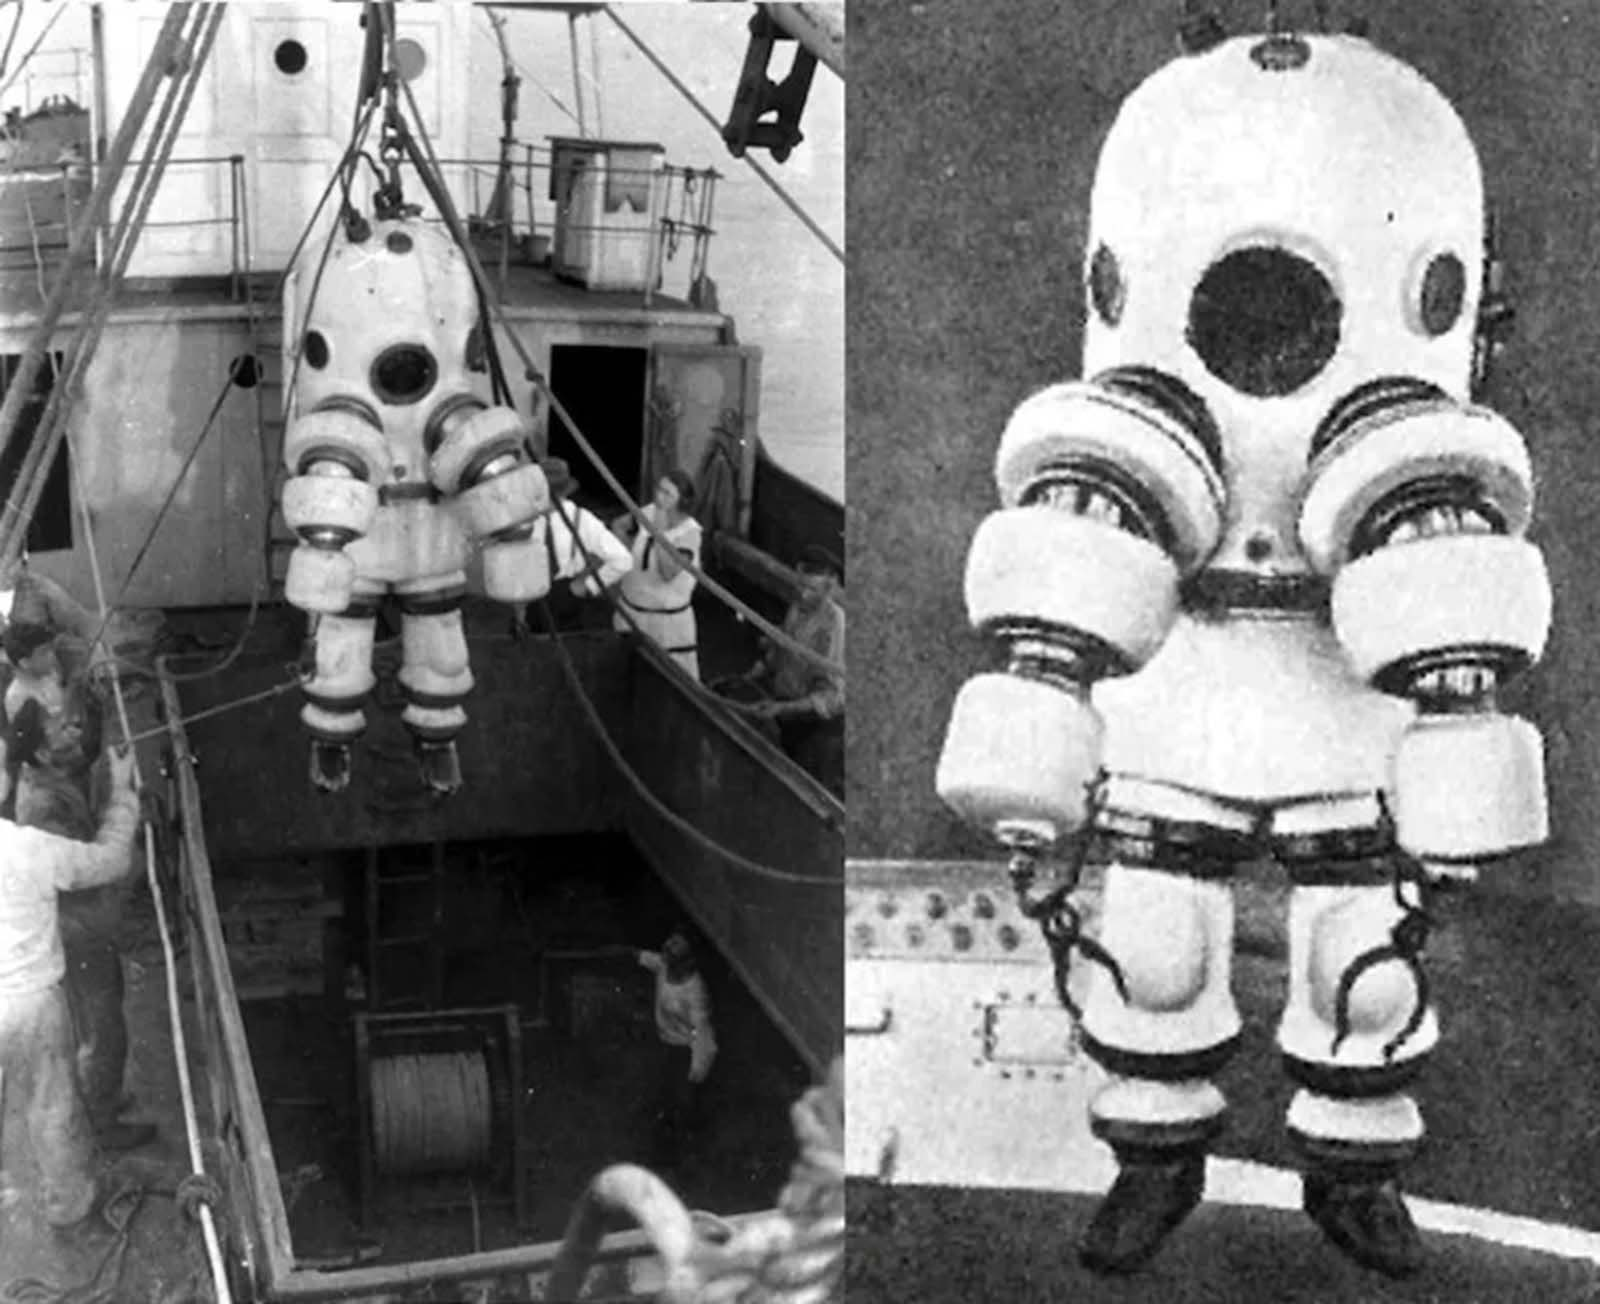 Neufeldt-Kuhnke diving suit. 1917-1922.